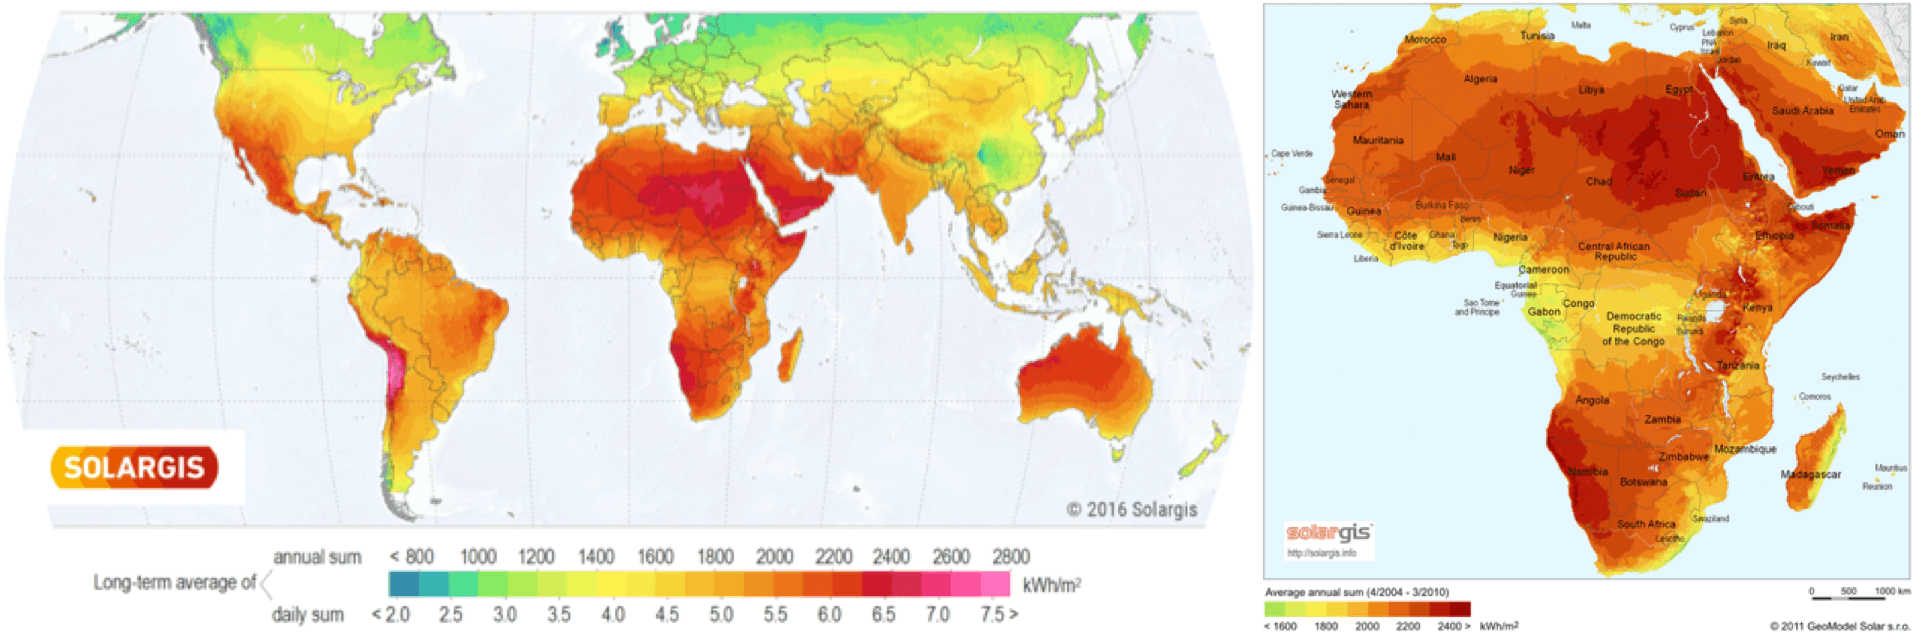 map of the world and Africa showing horizontal irradiation